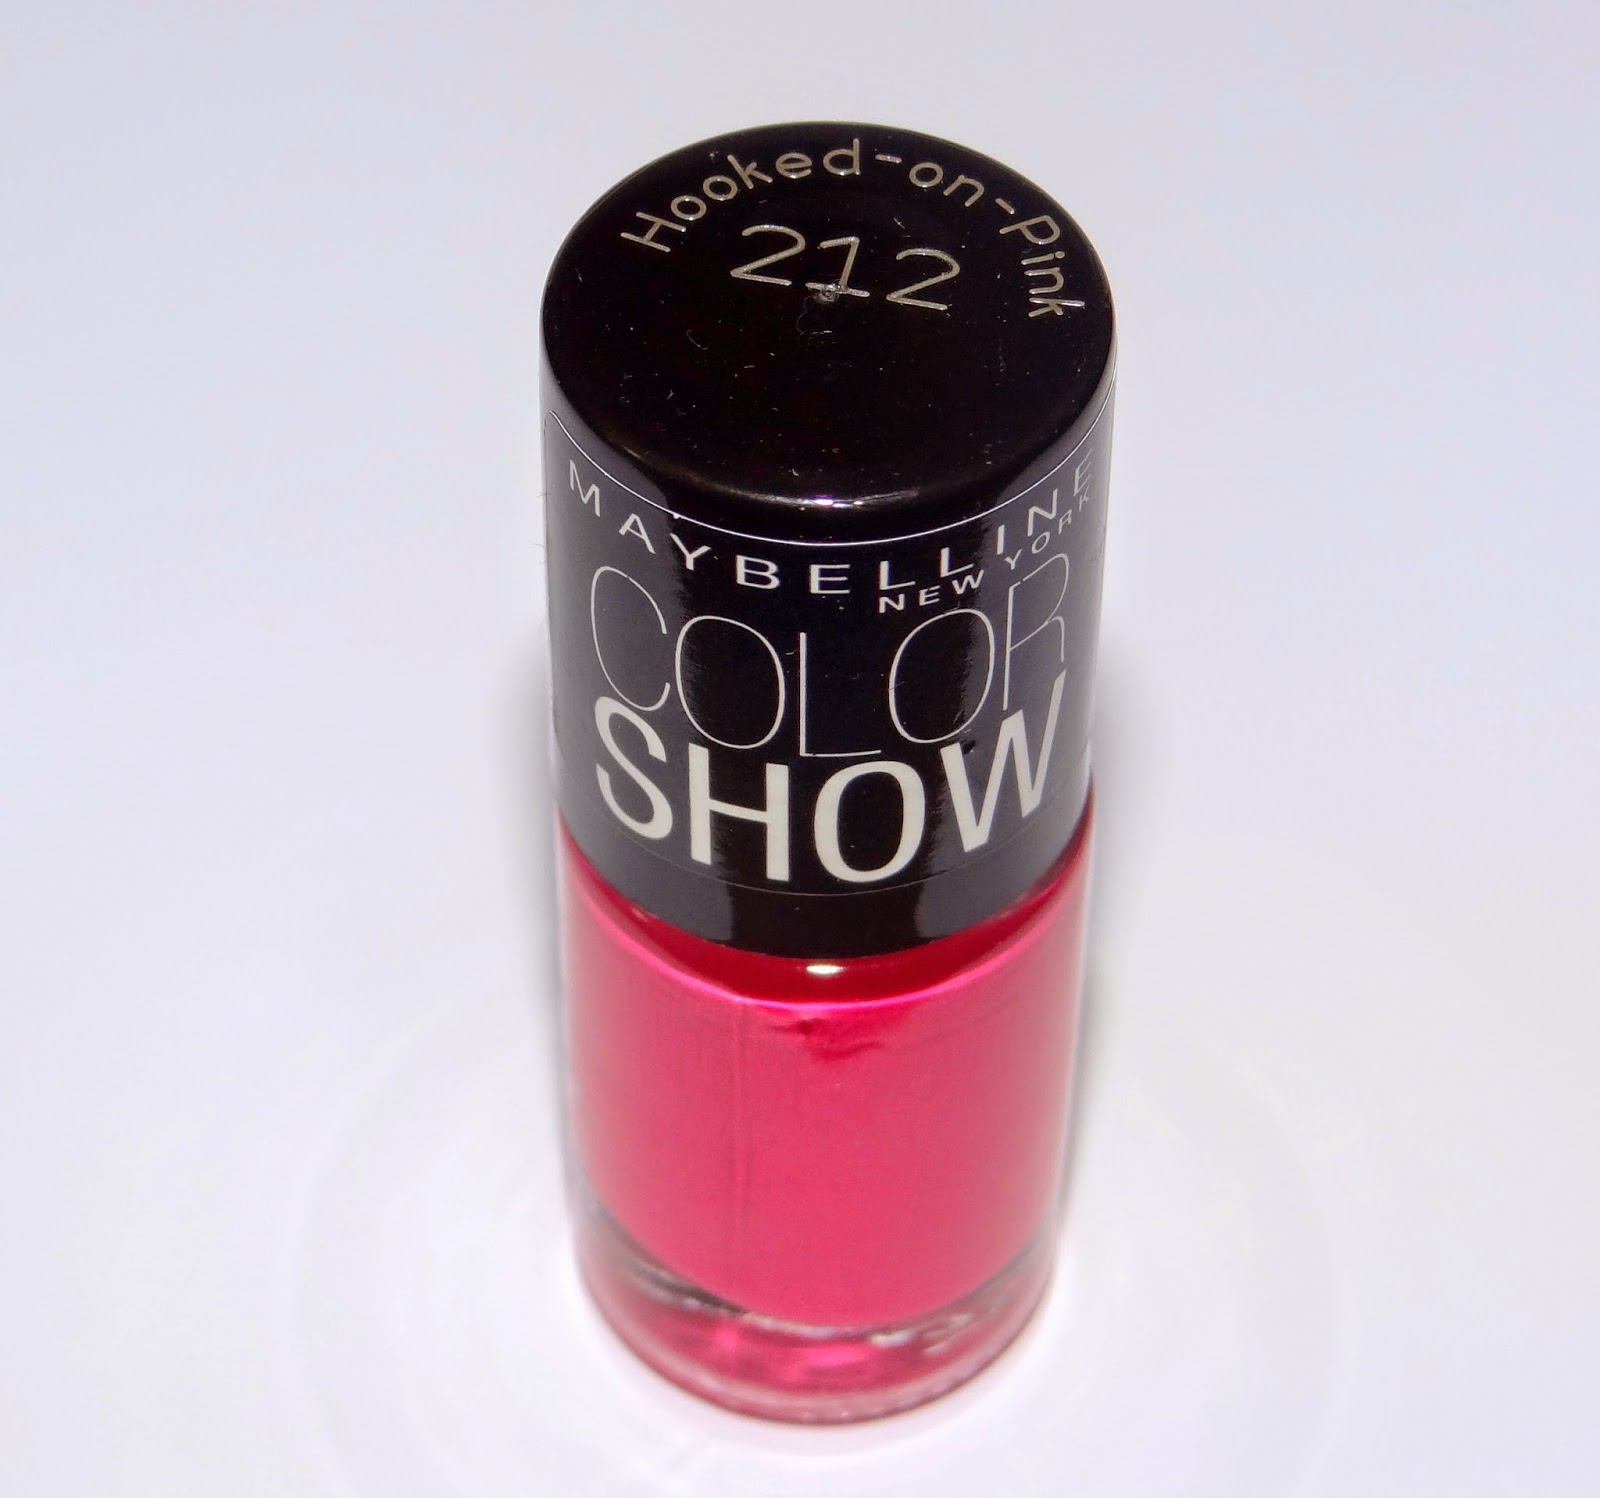 Maybelline color show nailpolish Hooked on Pink